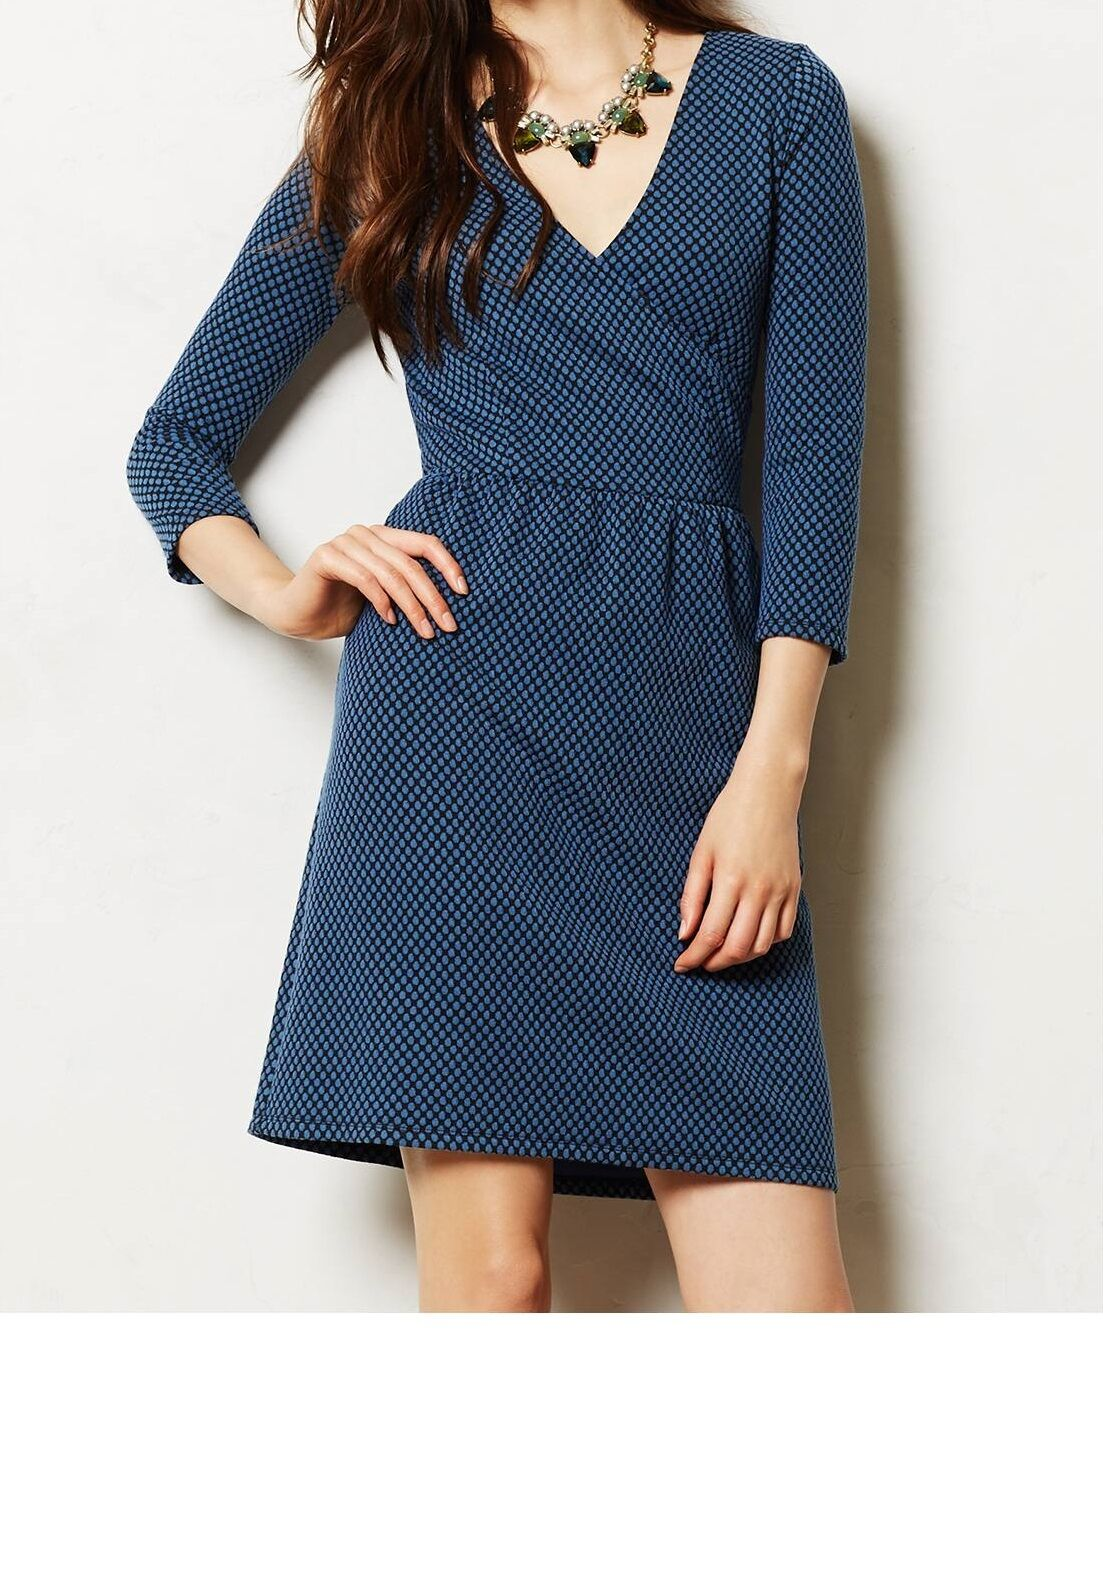 d3caabd8eba8 HD in Paris Textured Wrap Dress Size Motif NW ANTHROPOLOGIE Tag Small bluee  nwouun27047-Dresses